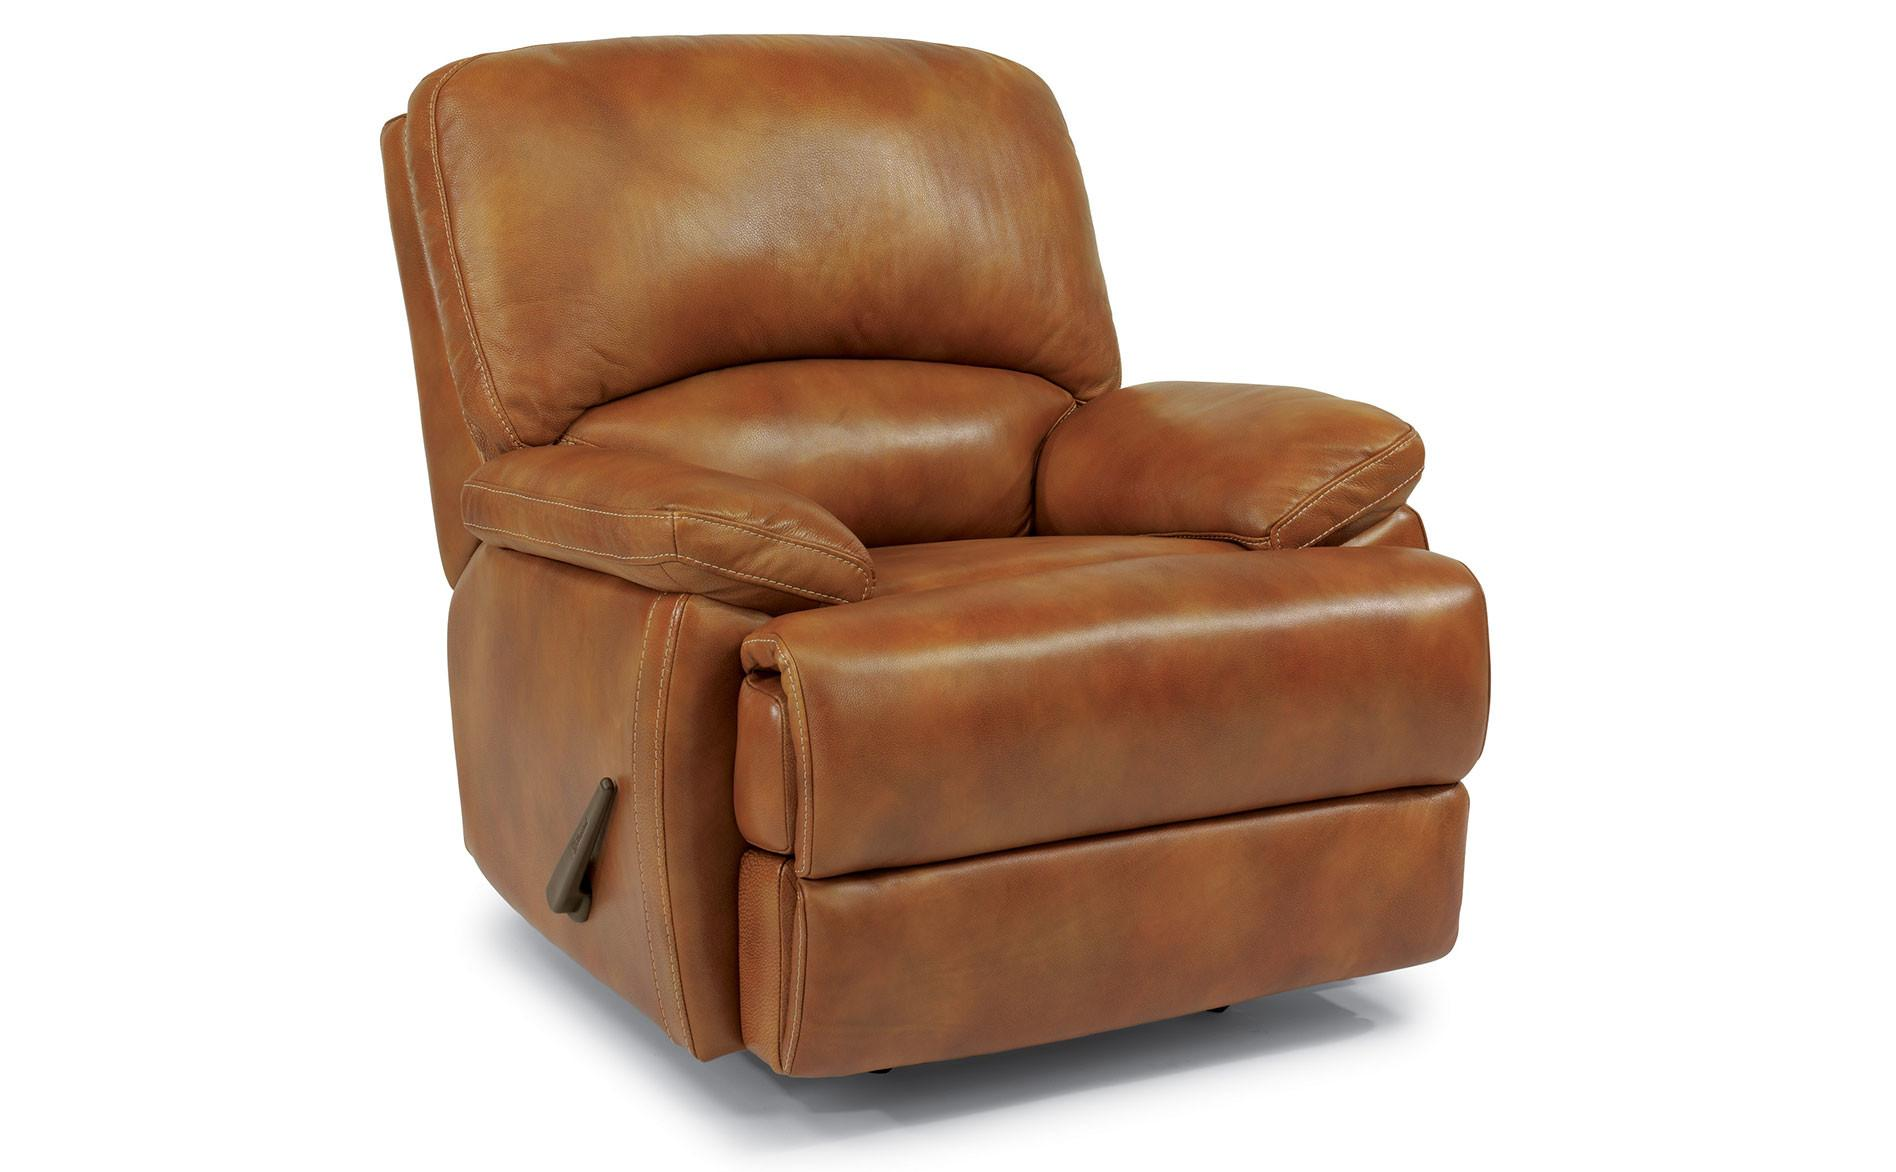 Small Leather Recliners Interesting Cozy